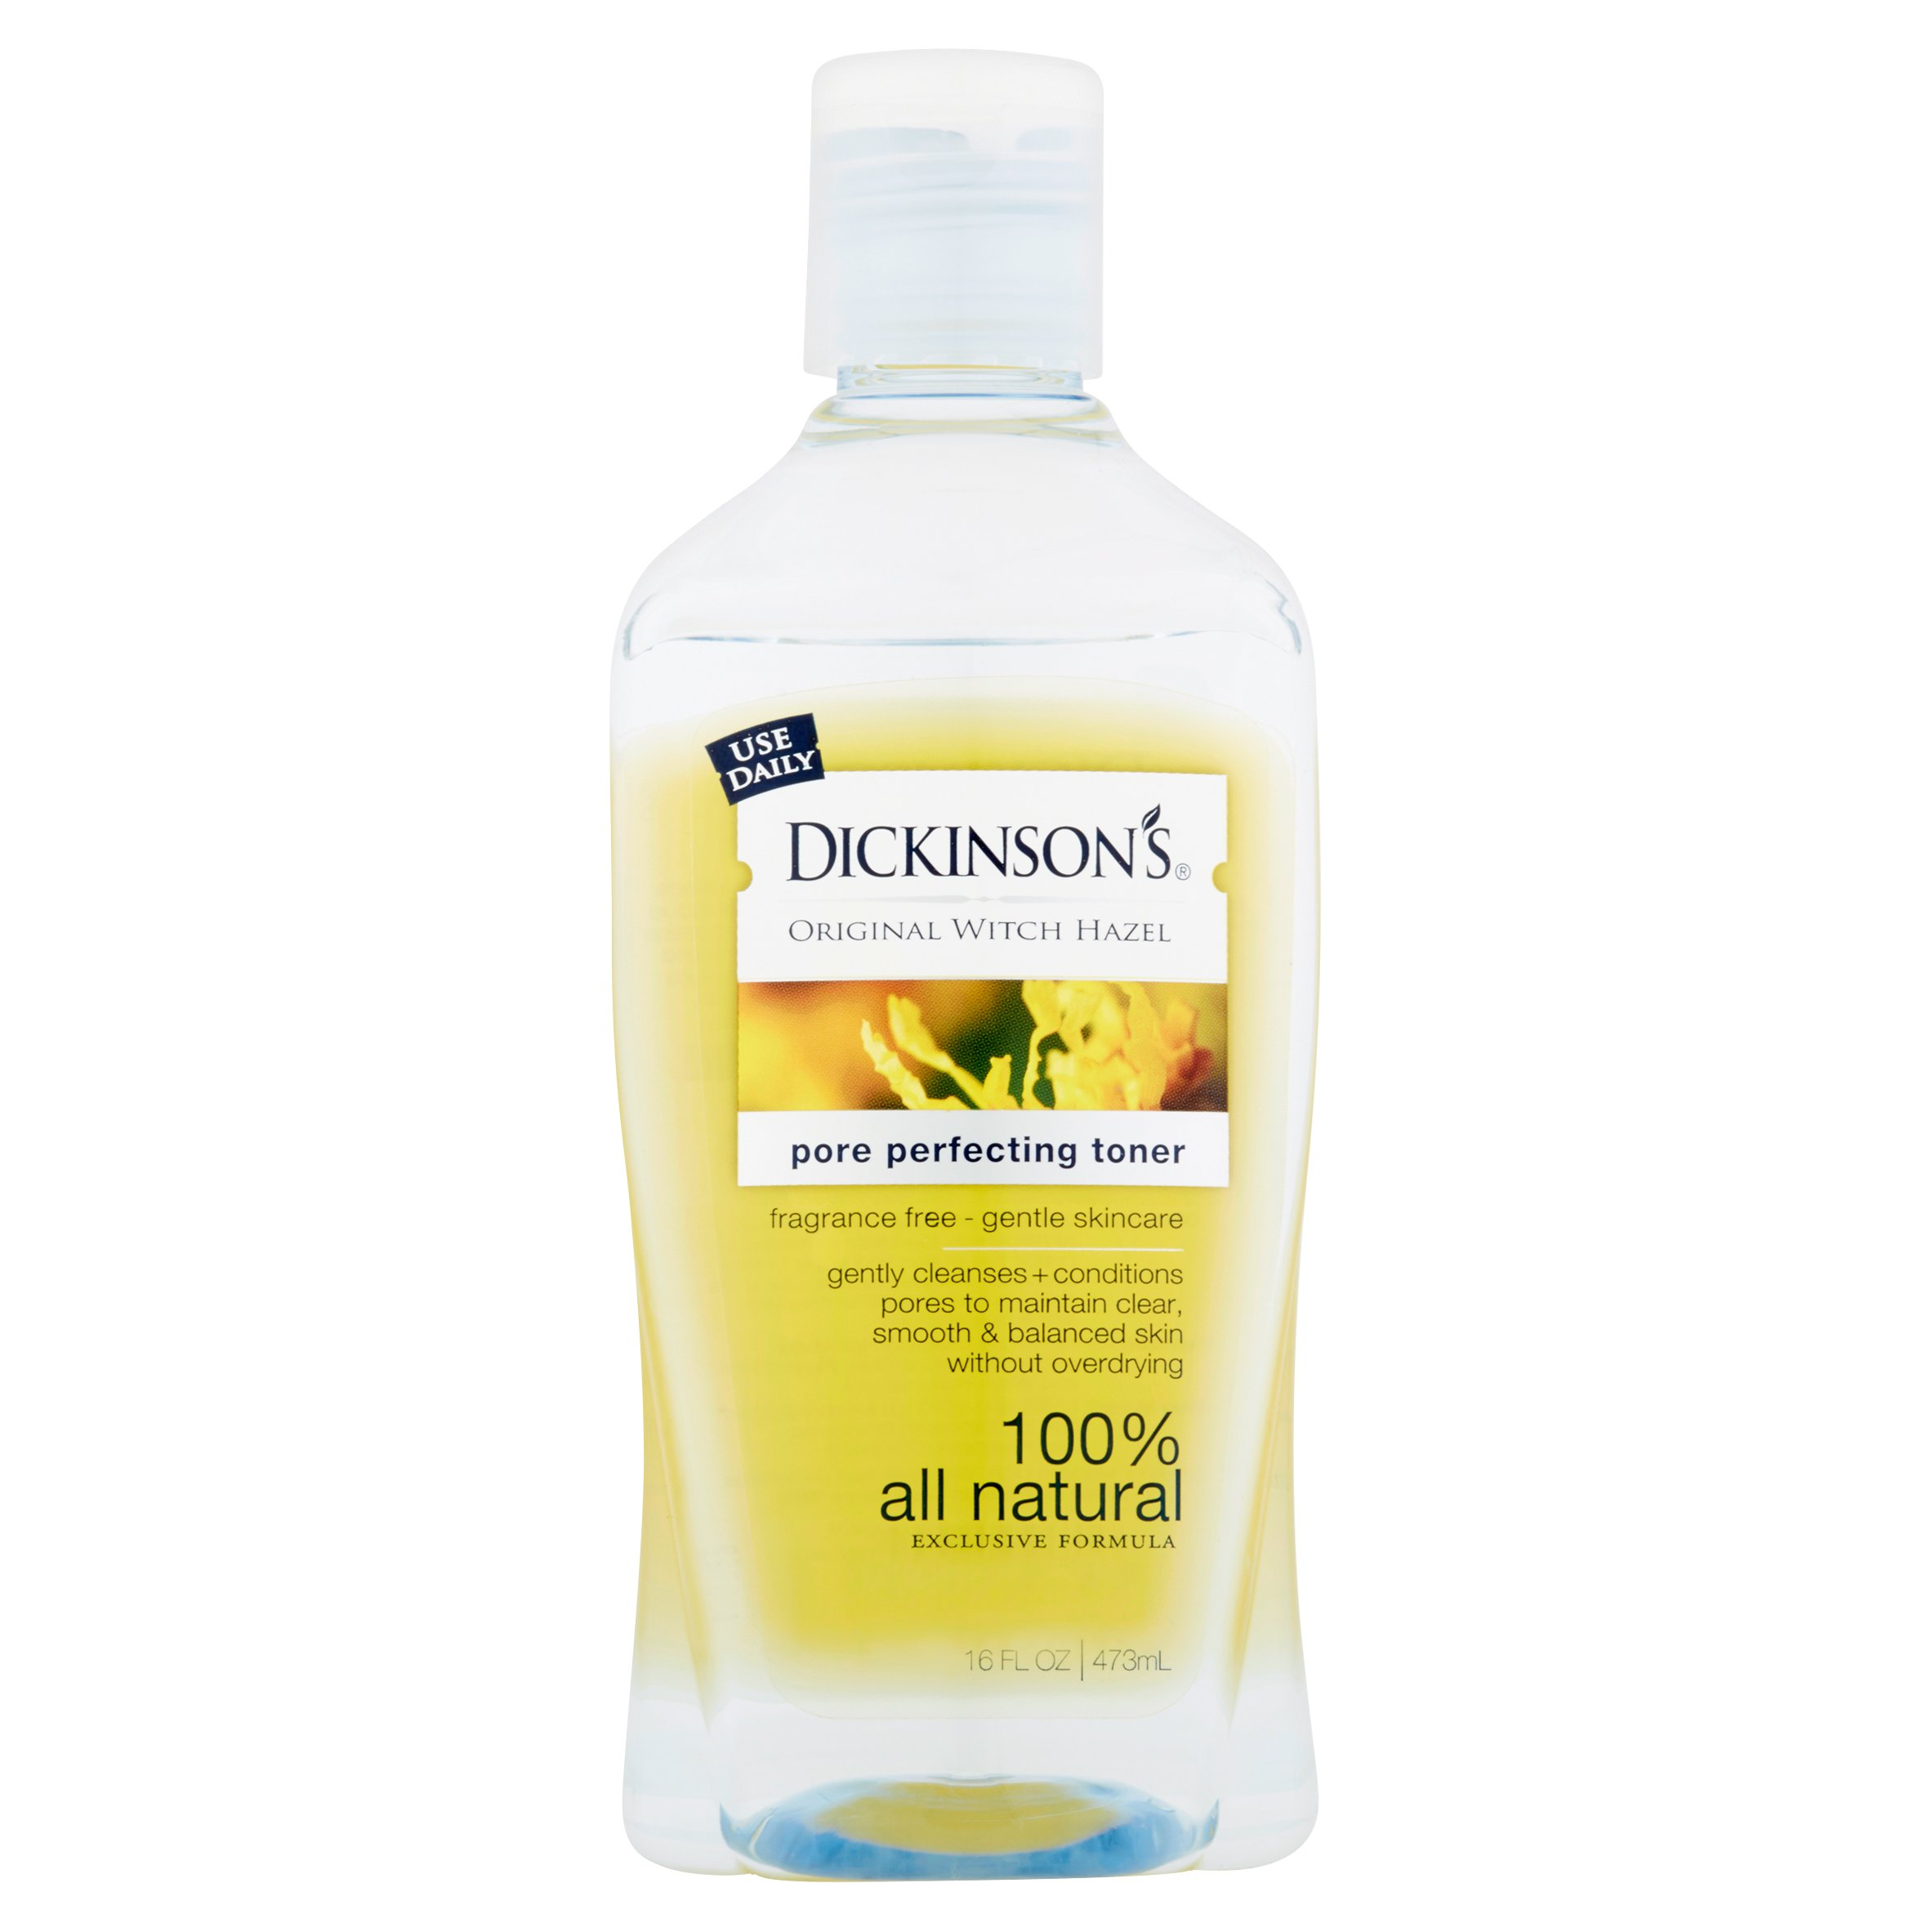 Dickinson's Original Witch Hazel Pore Perfecting Toner, 16 fl oz